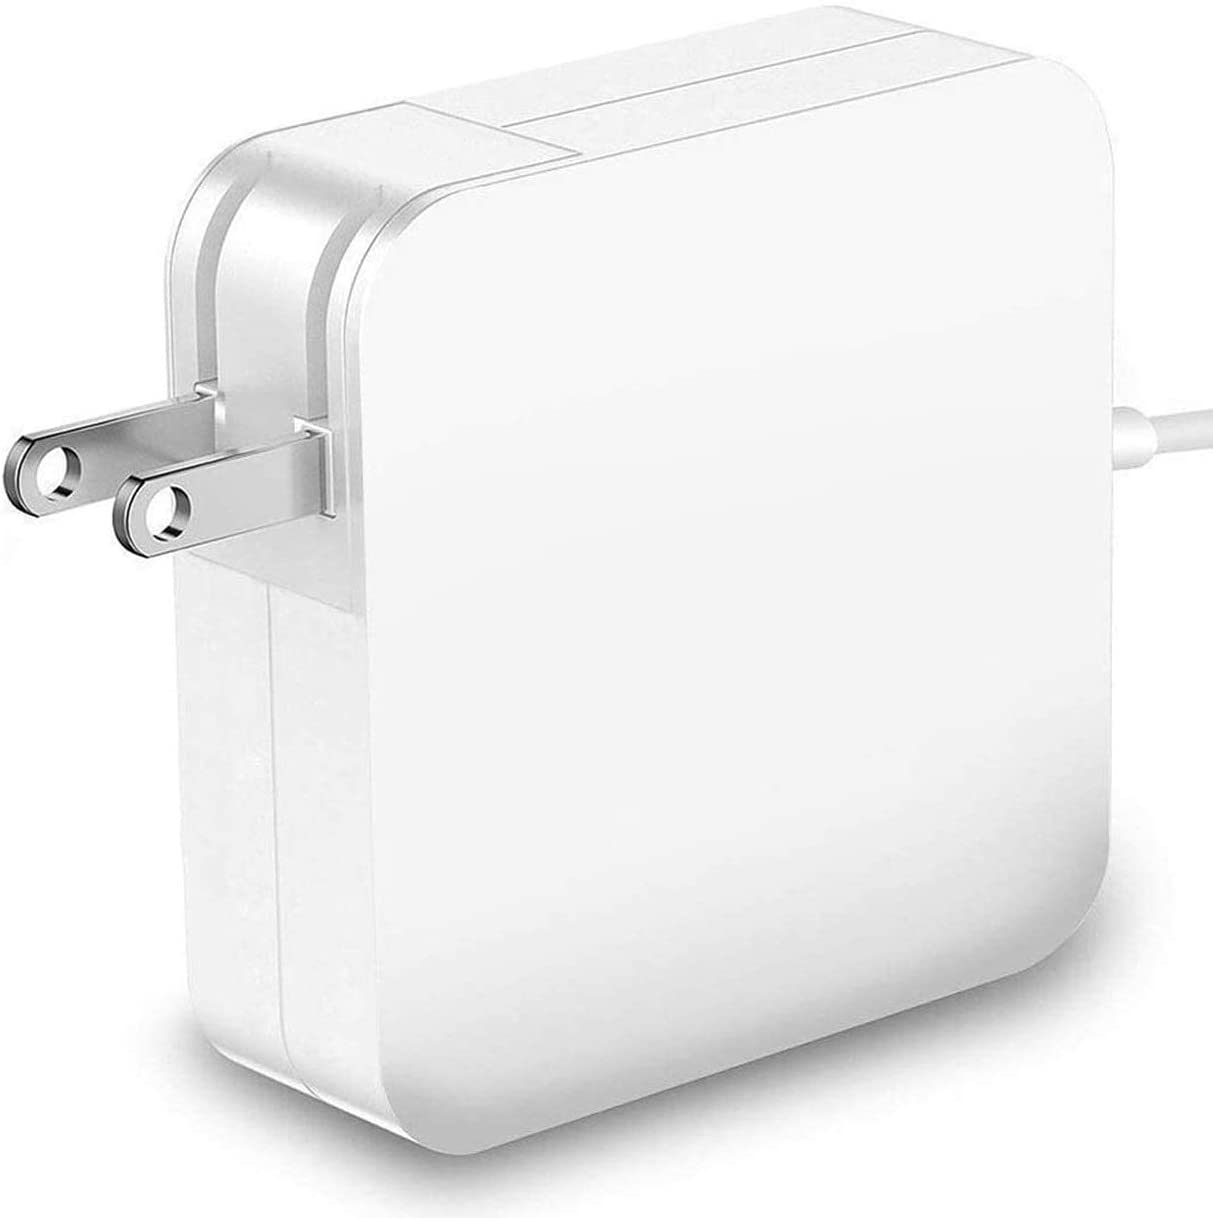 Compatible with MacBook Pro Charger 60W, L-Tip Connector Laptop AC Power Adapter Mac Book Pro 13 inch Before 2012 by Uflatek